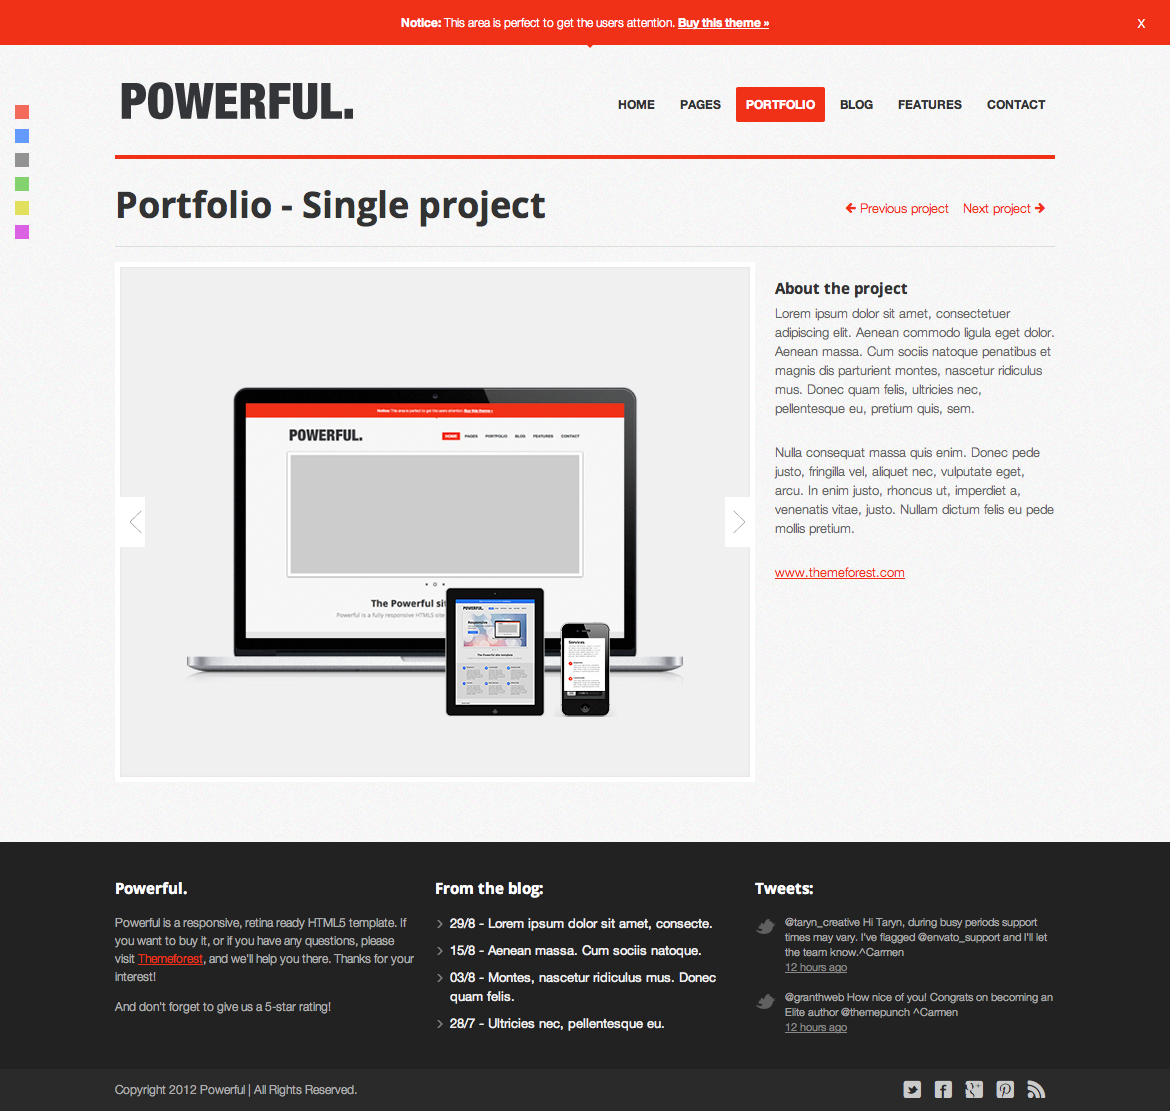 Powerful - Responsive, Retina-ready HTML5 template